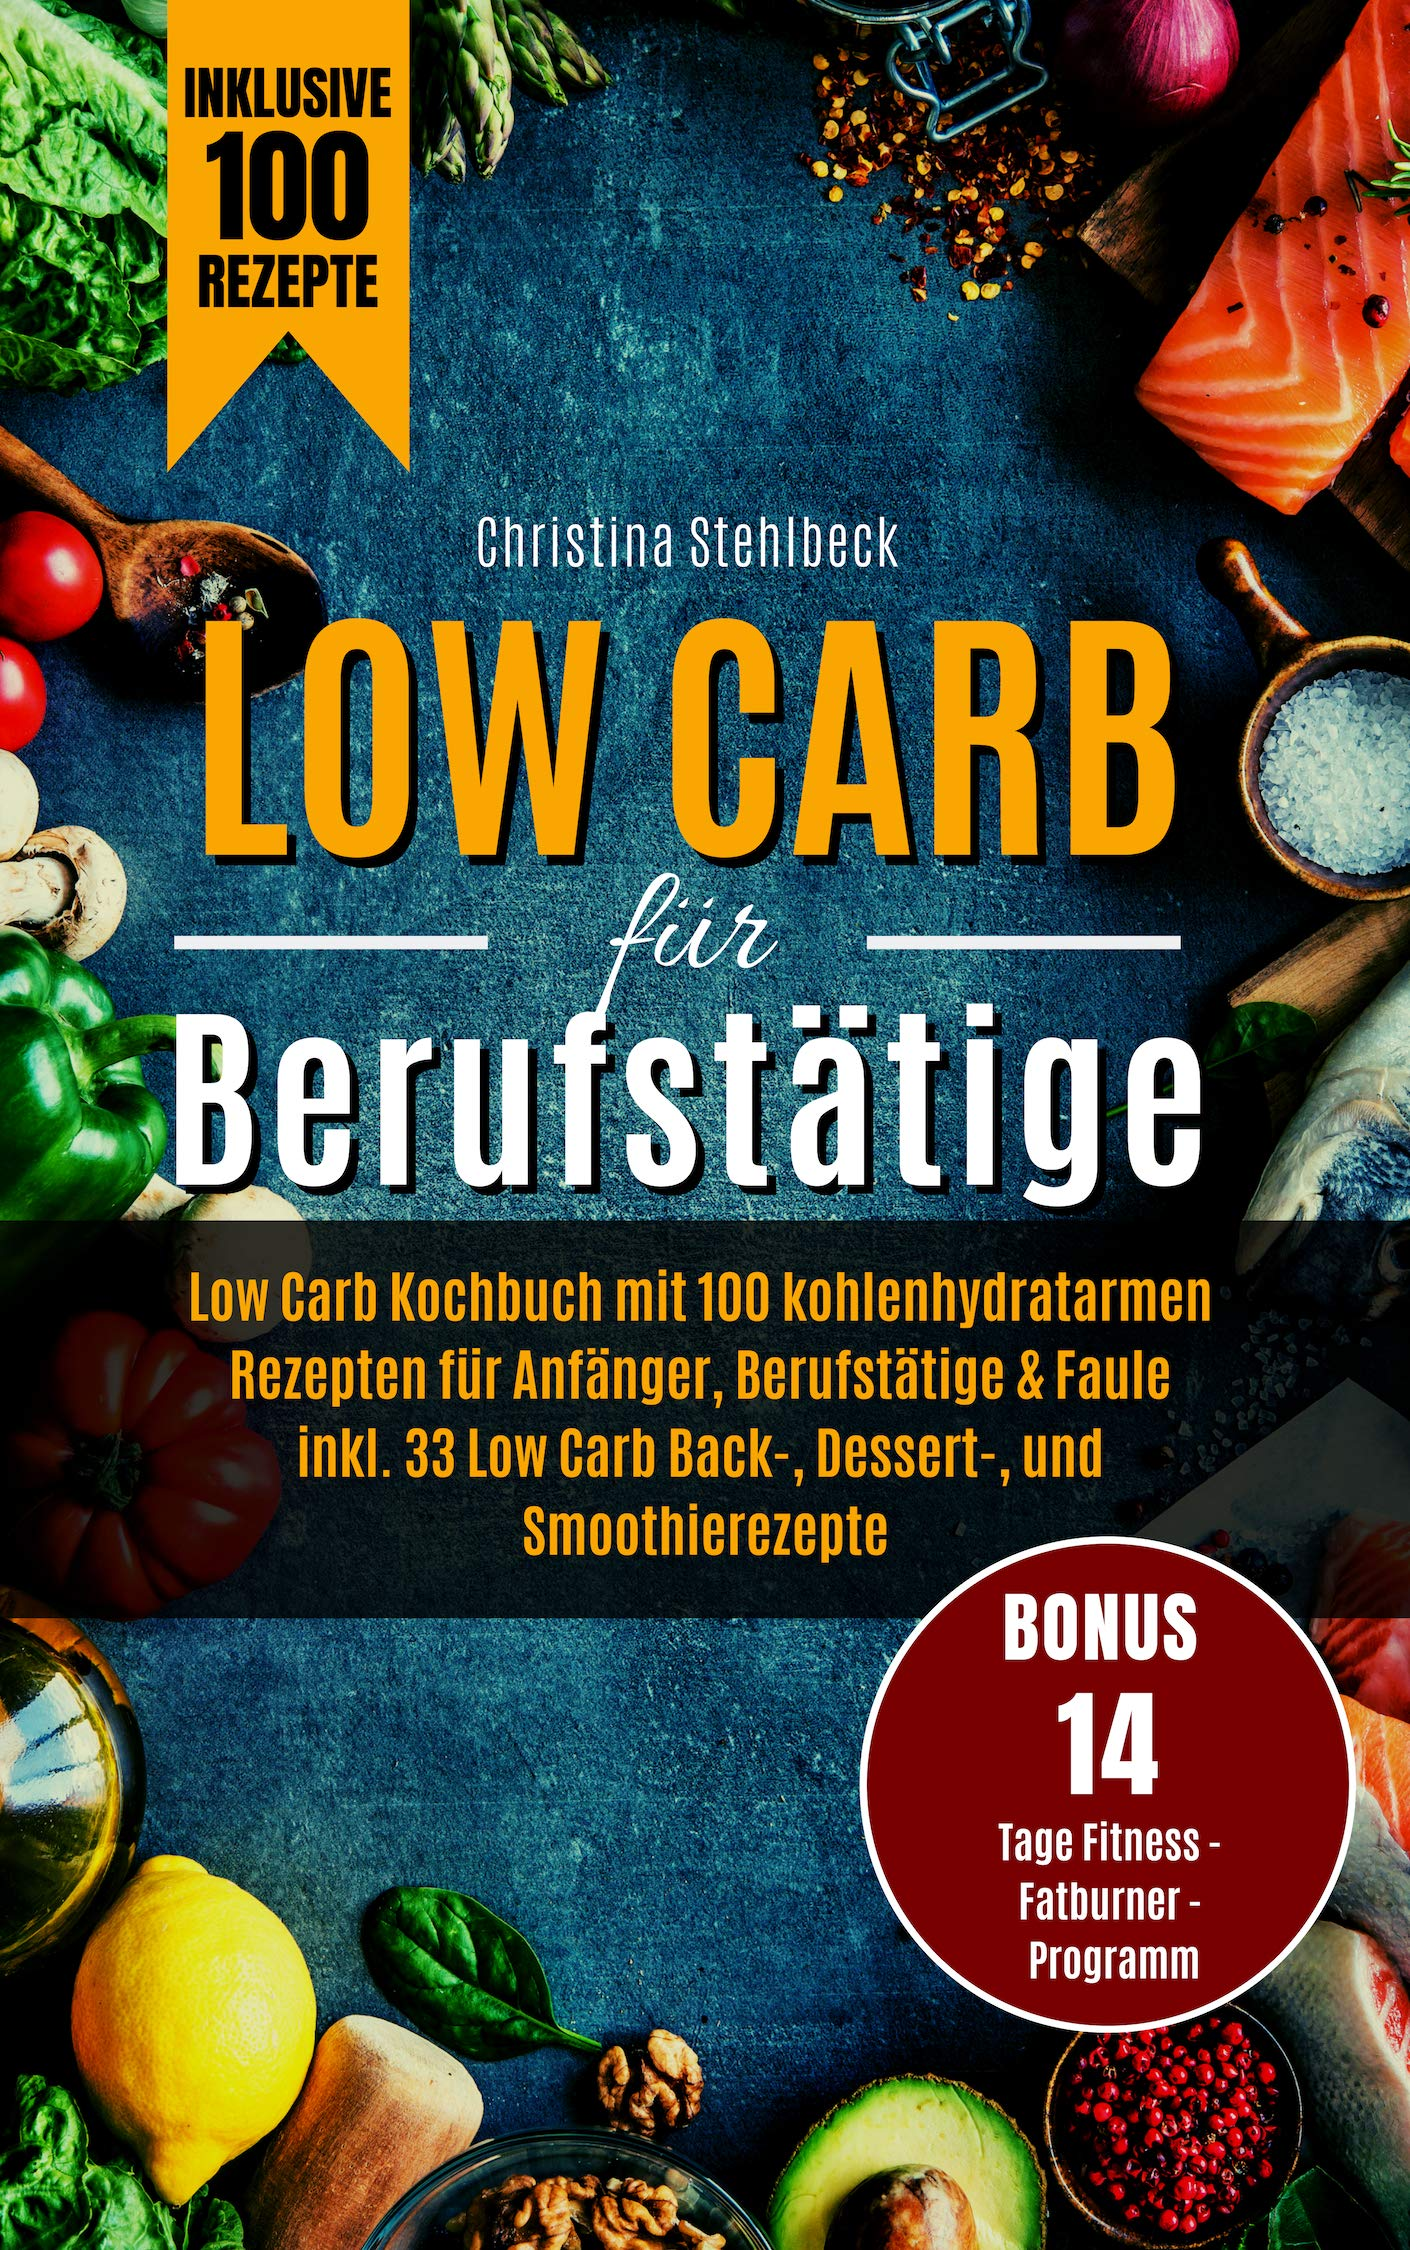 Low Carb für Berufstätige: Kochbuch mit 100 Low Carb Rezepten für Anfänger, Berufstätige & Faule, inkl. 42 Low Carb Back-, Dessert- und Smoothierezepte. ... Fitness-Fatburner-Programm (German Edition)